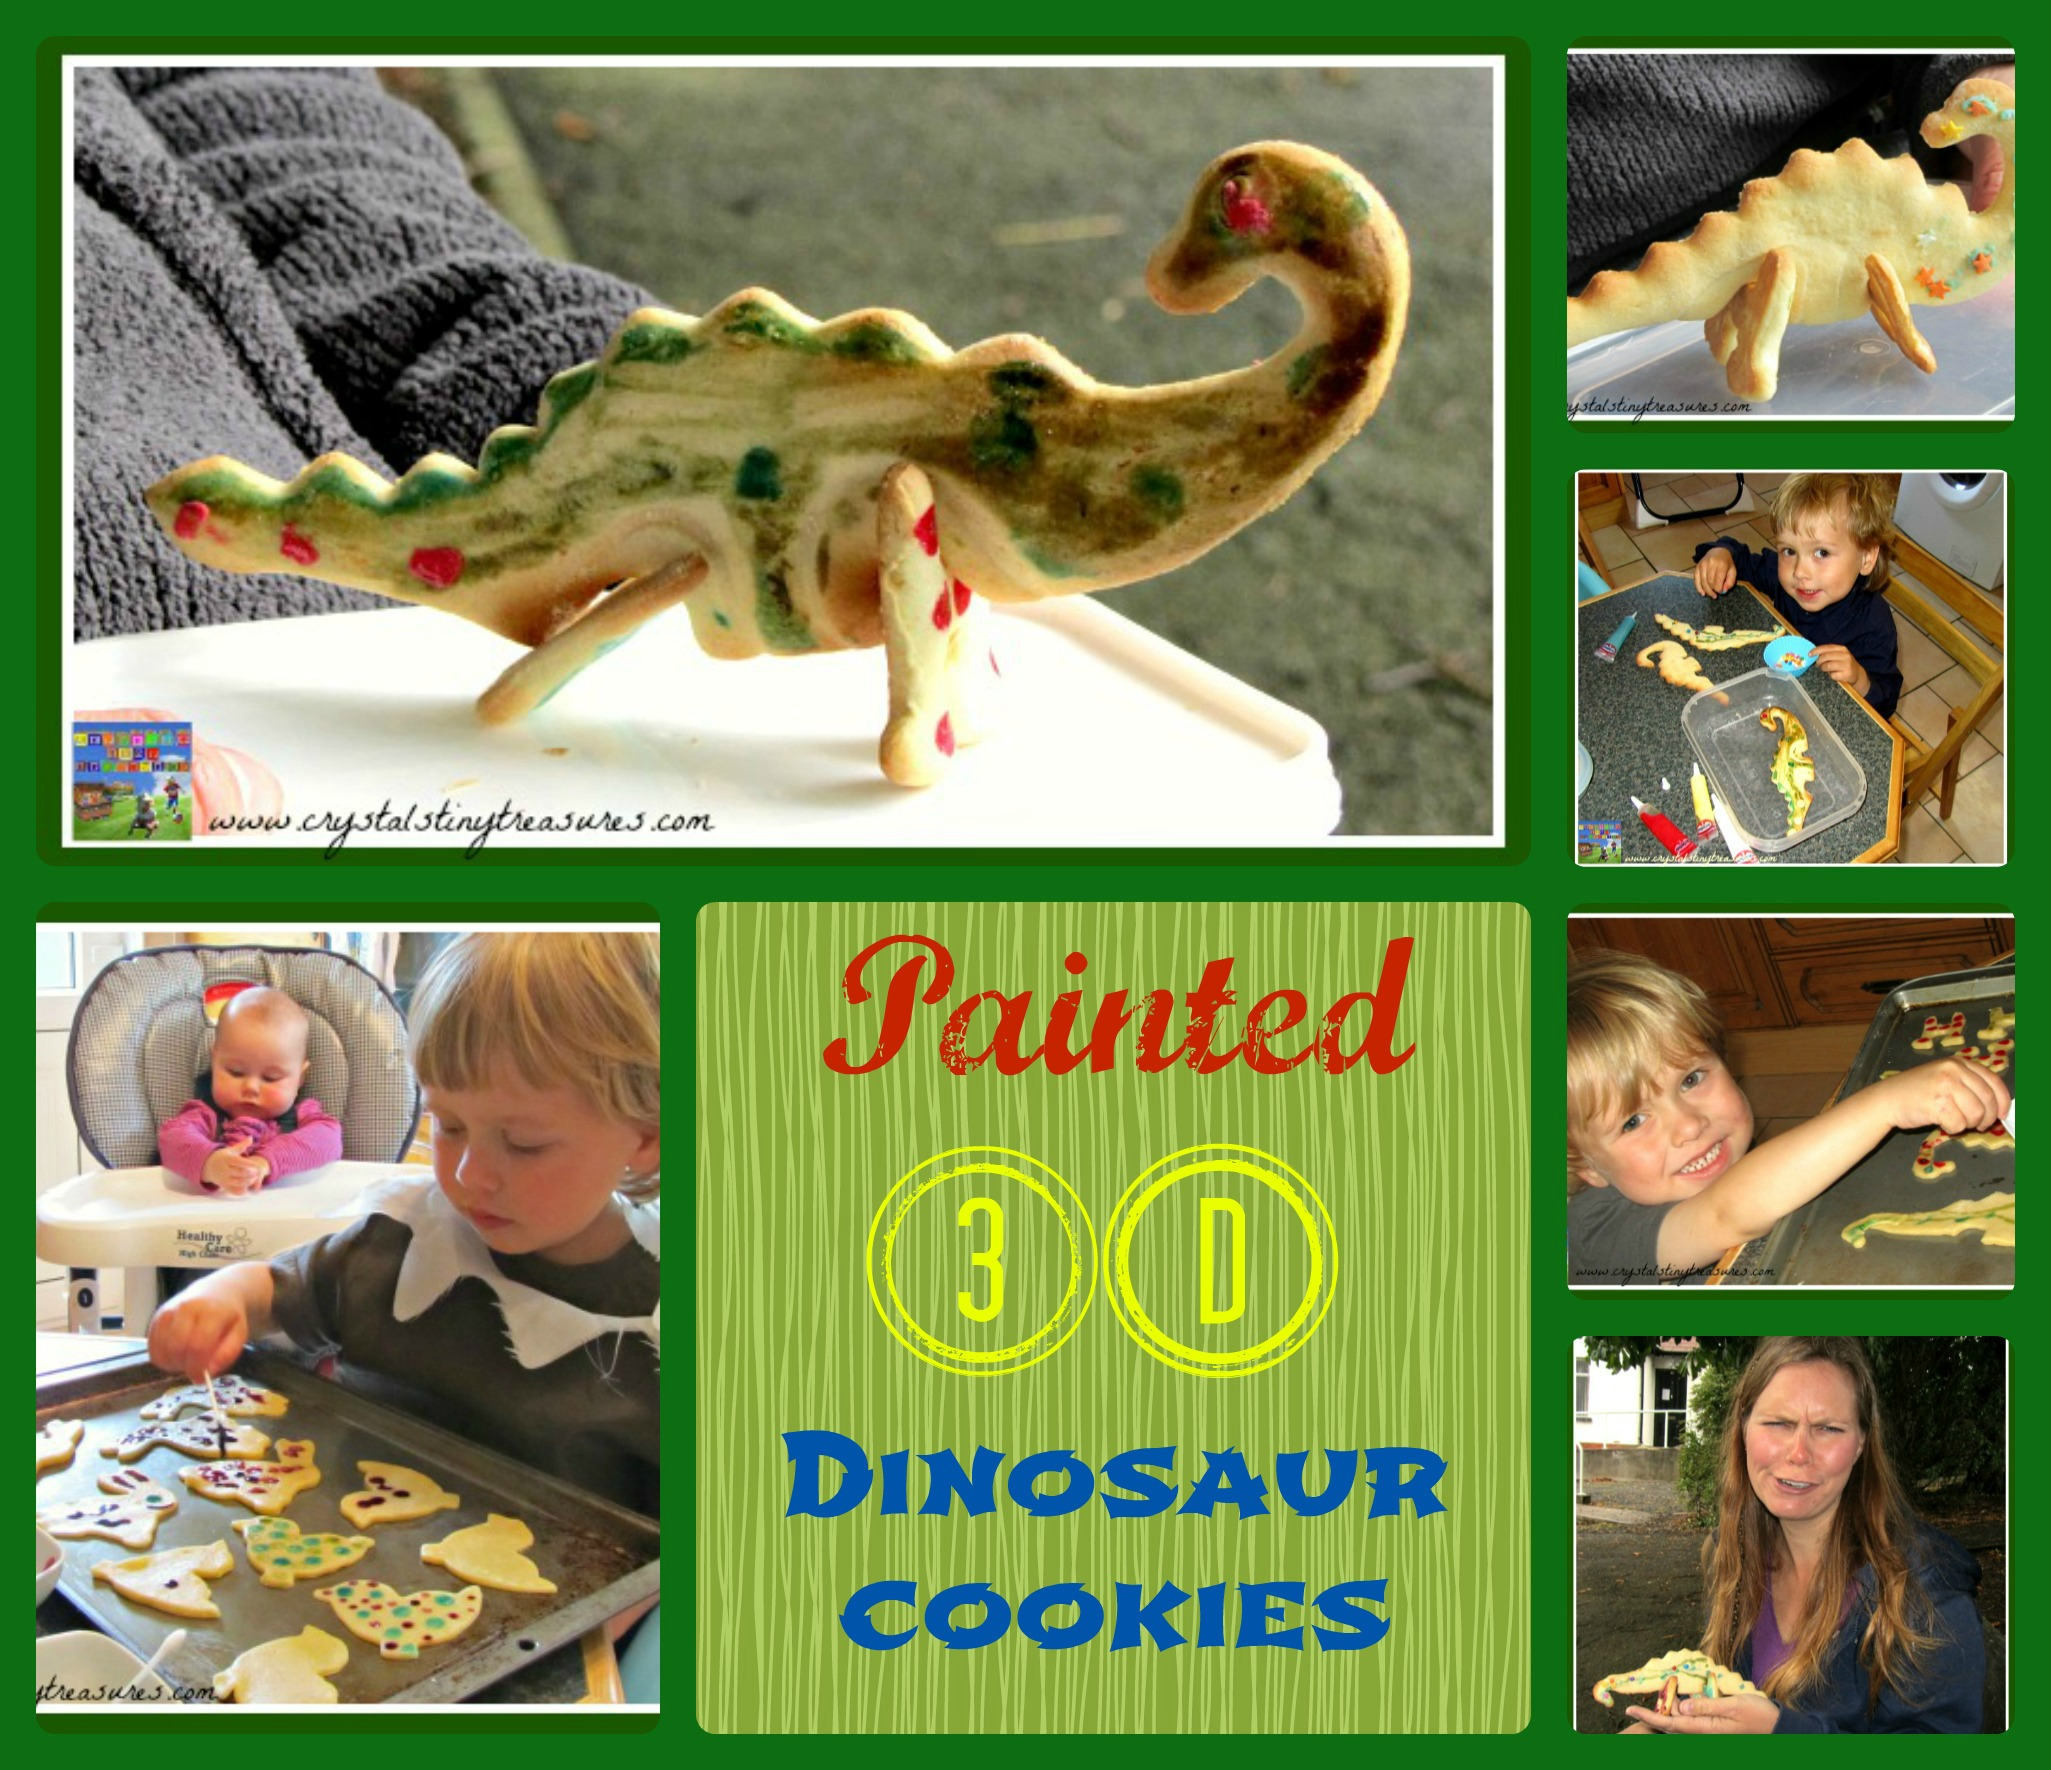 3D Painted Dino cookies, fun cookies for kids to bake, painted cookies, dino cookies, adventure cookies, photo